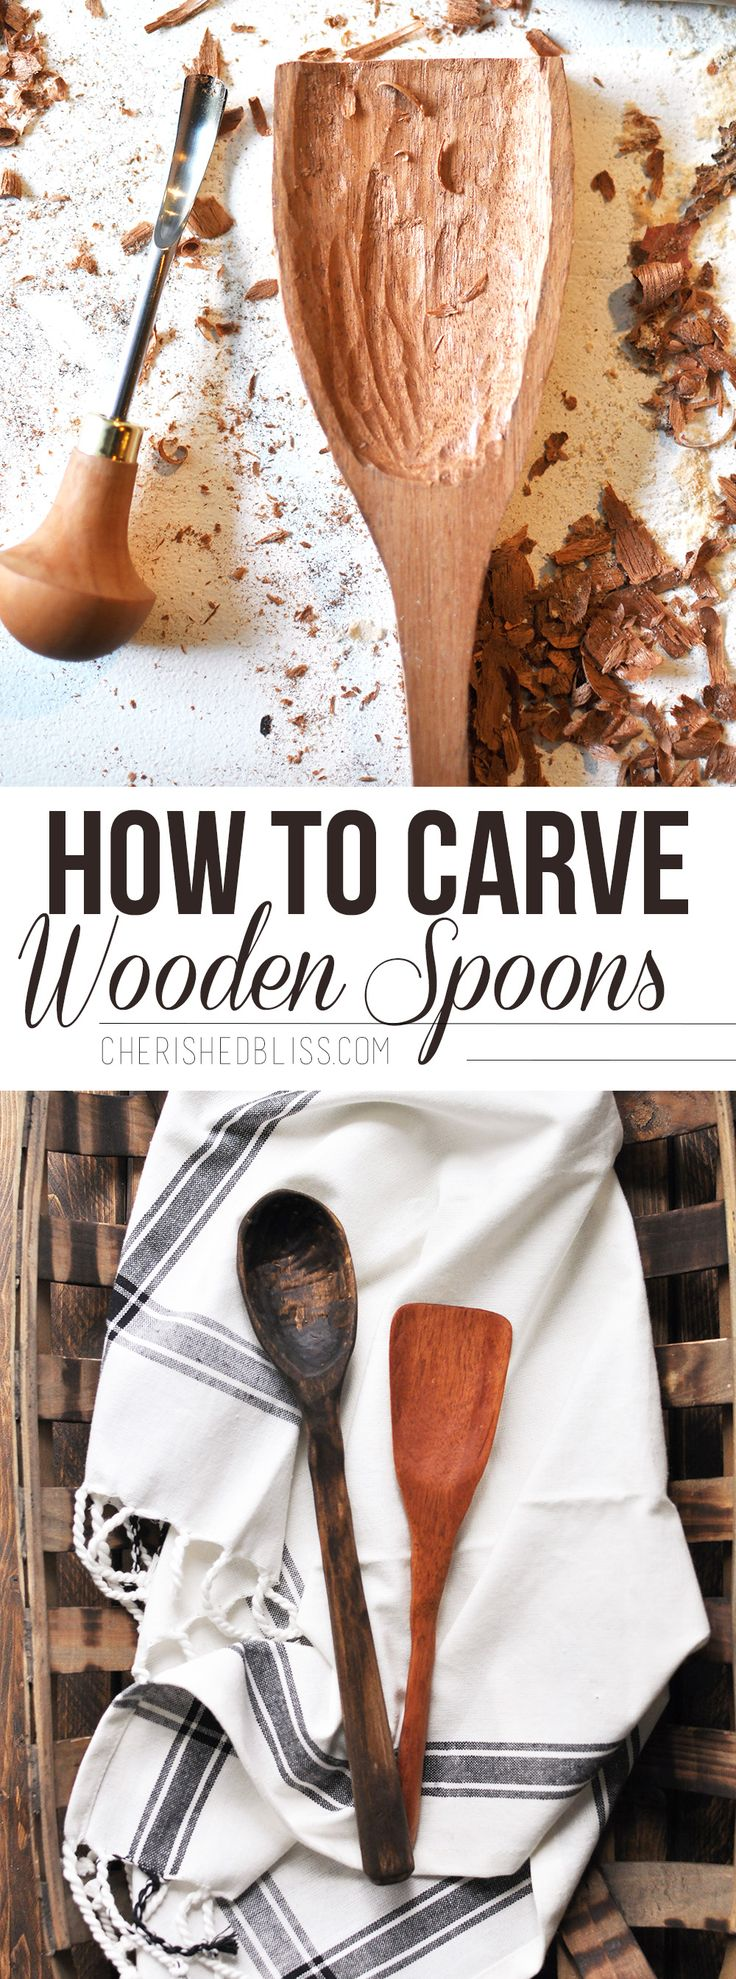 Create a meaningful and memorable gift for your loved ones with this easy to follow tutorial on how to Carve Wooden Spoons!